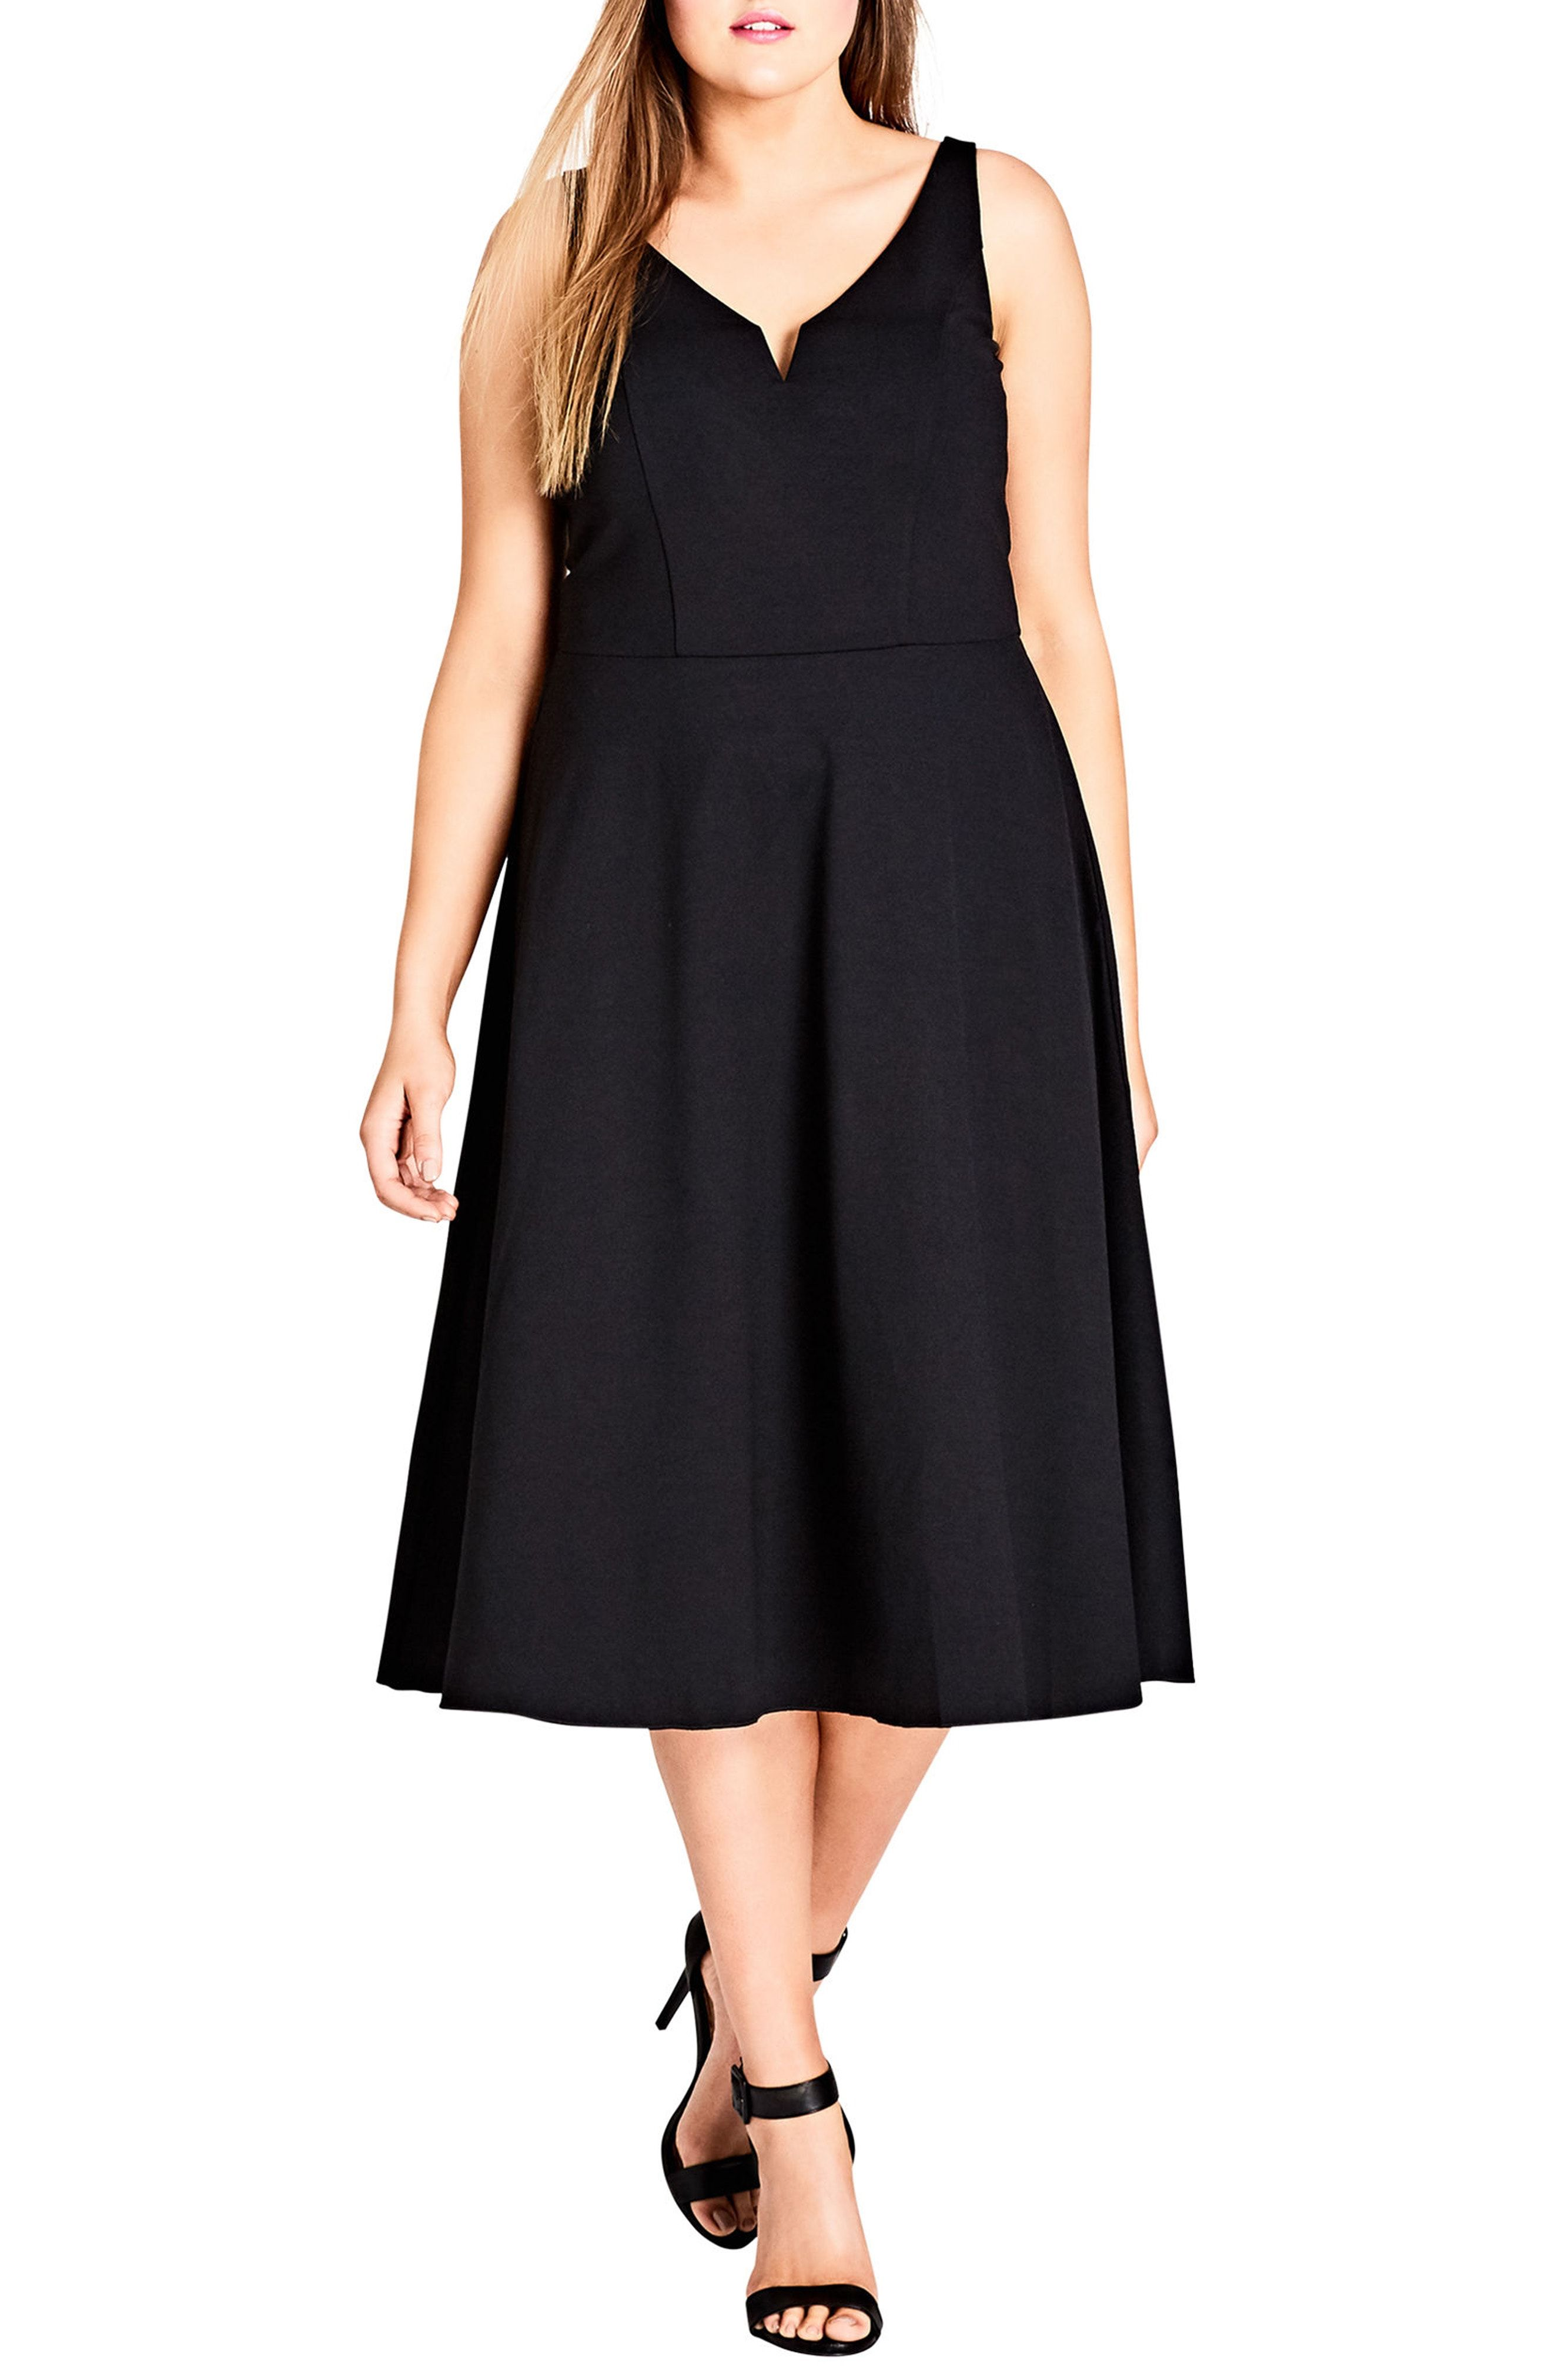 0dedc6837e City Chic Cute Girl Fit & Flare Midi Dress available at #Nordstrom ...